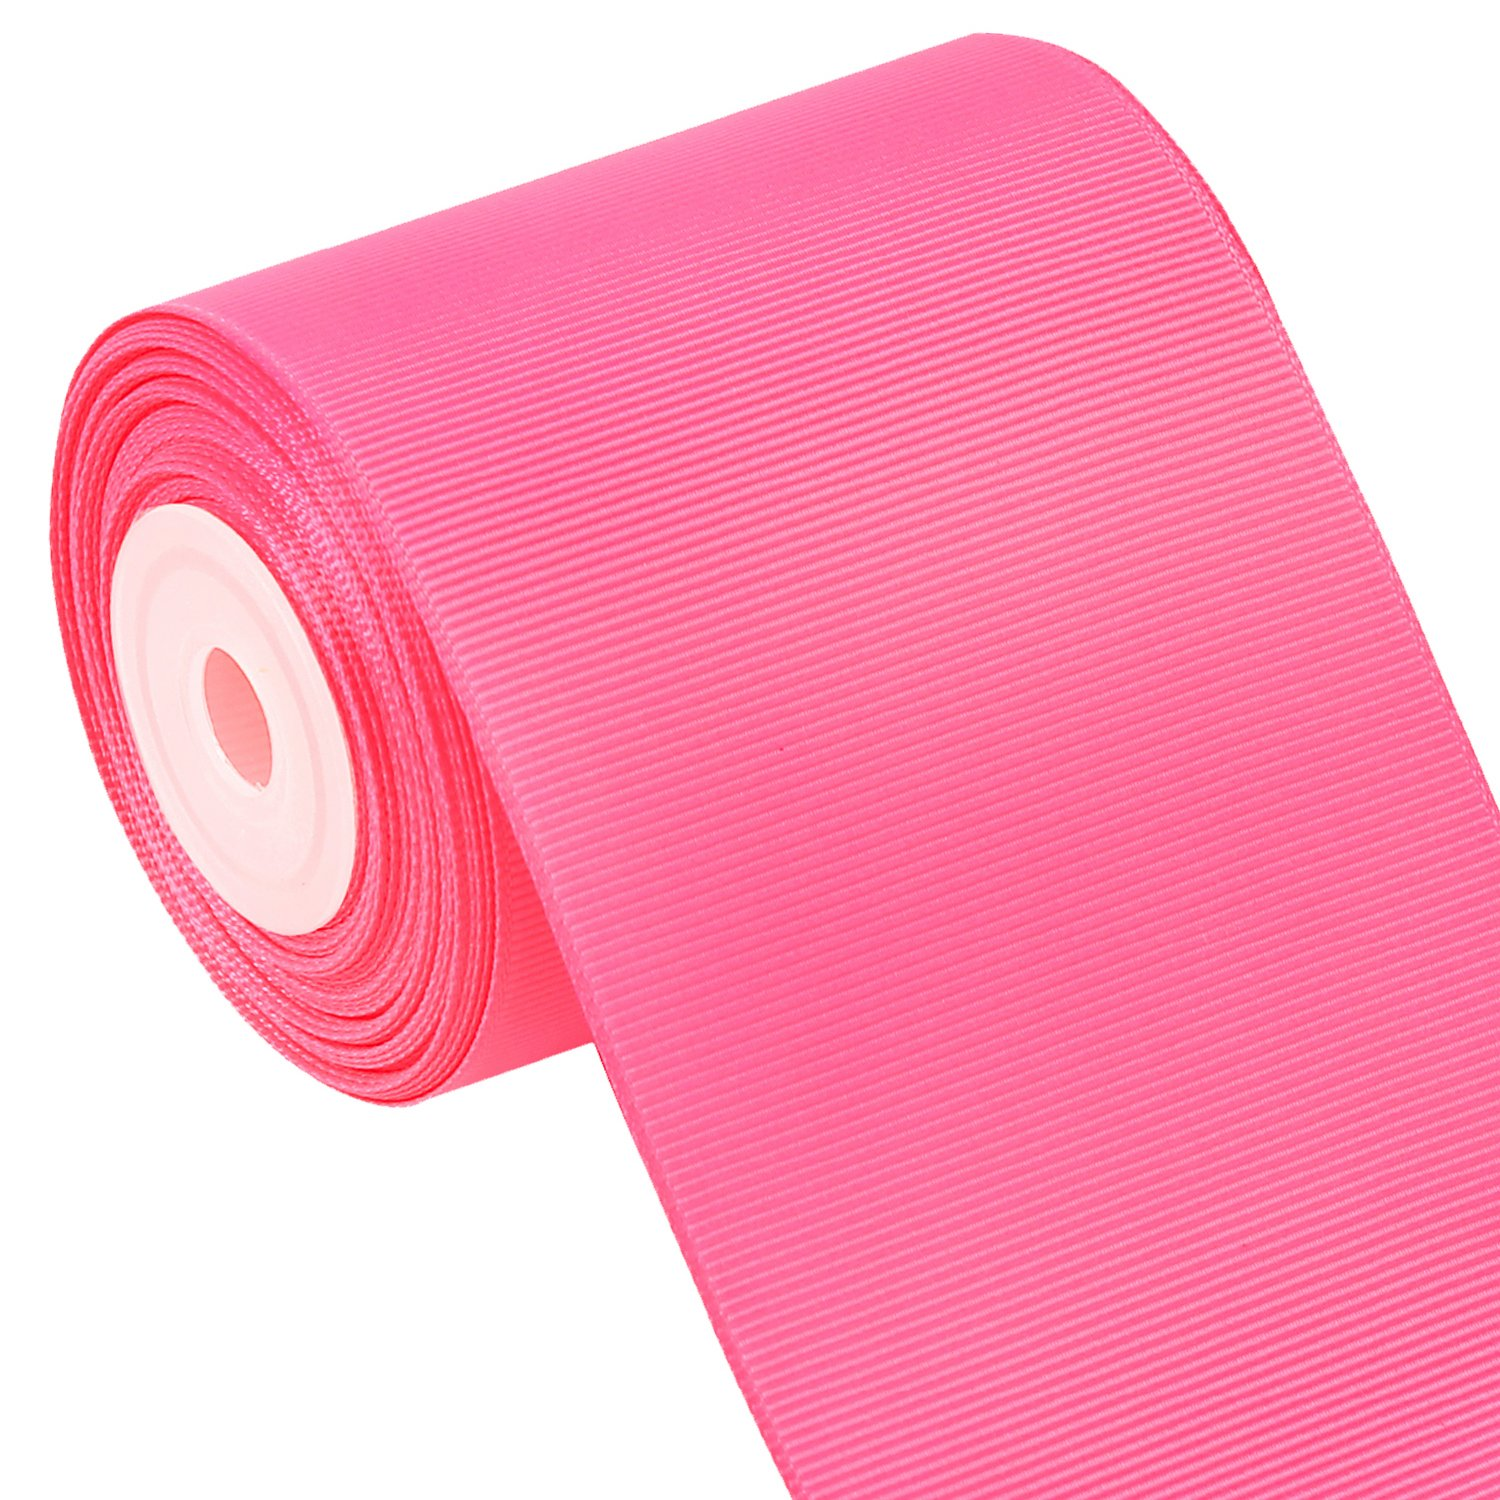 Wide Pink Ribbon Offray Pink Grosgrain Ribbon 3 inches wide x 10 yards